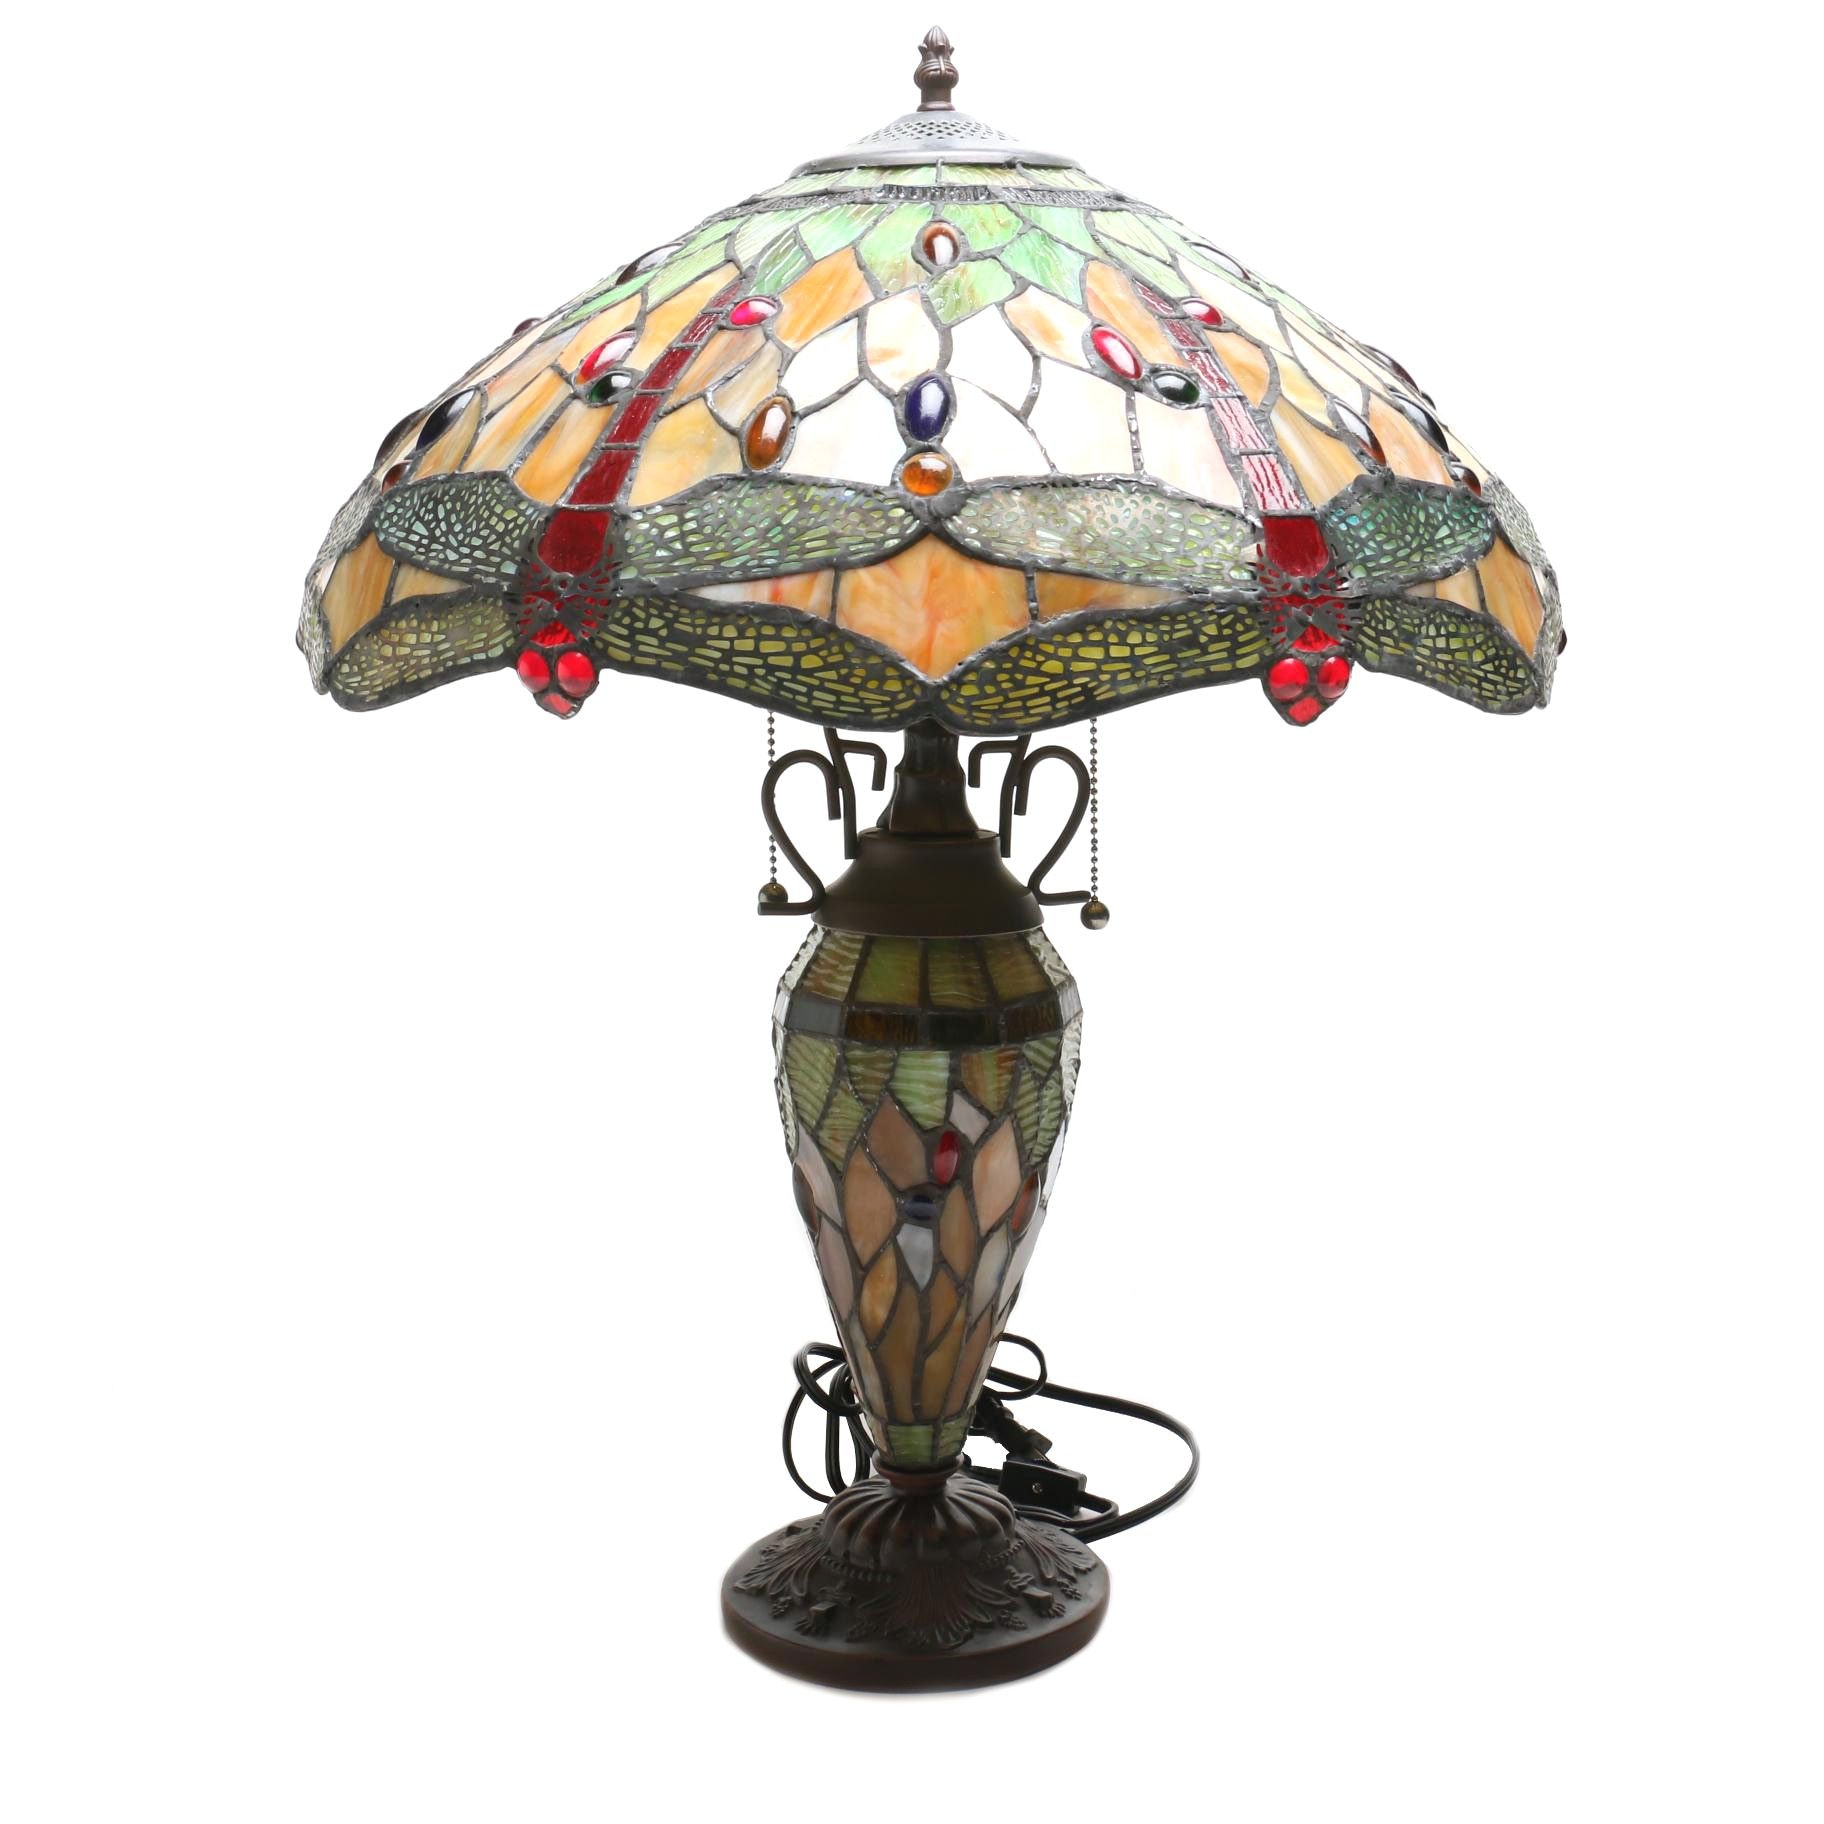 Stain Glass Table Lamp with Dragonfly Motif